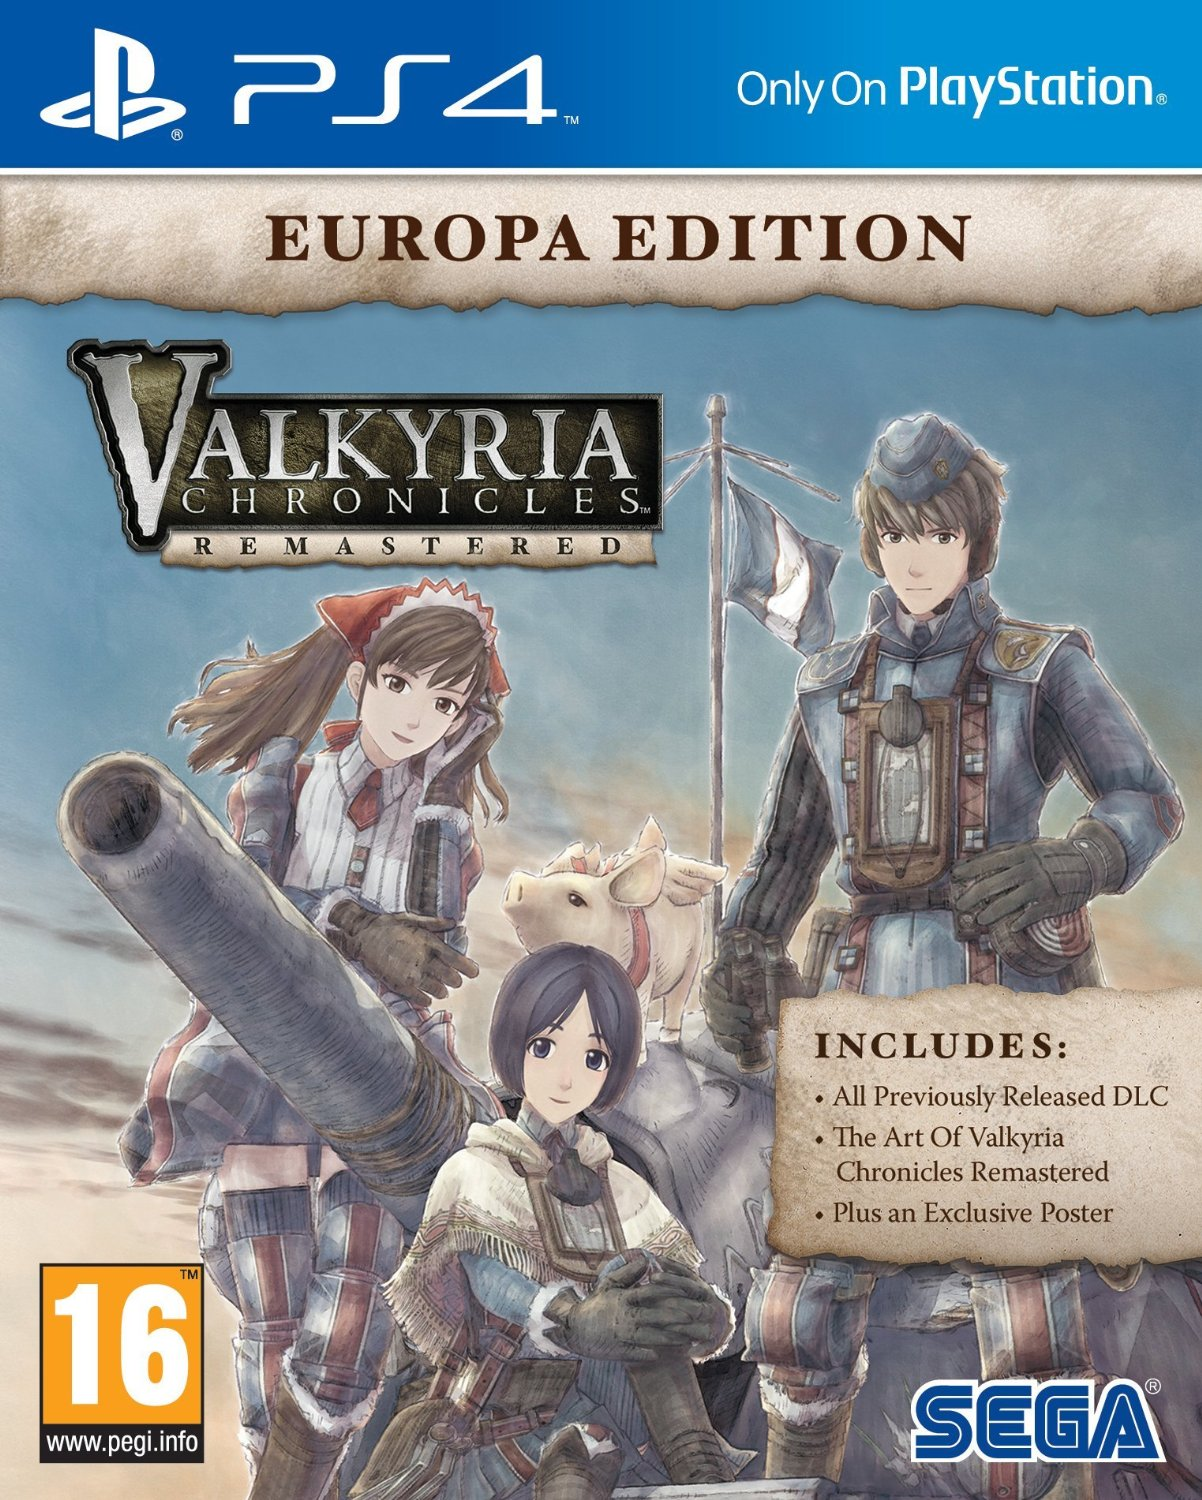 Valkyria Chronicles Remastered. Europa Edition